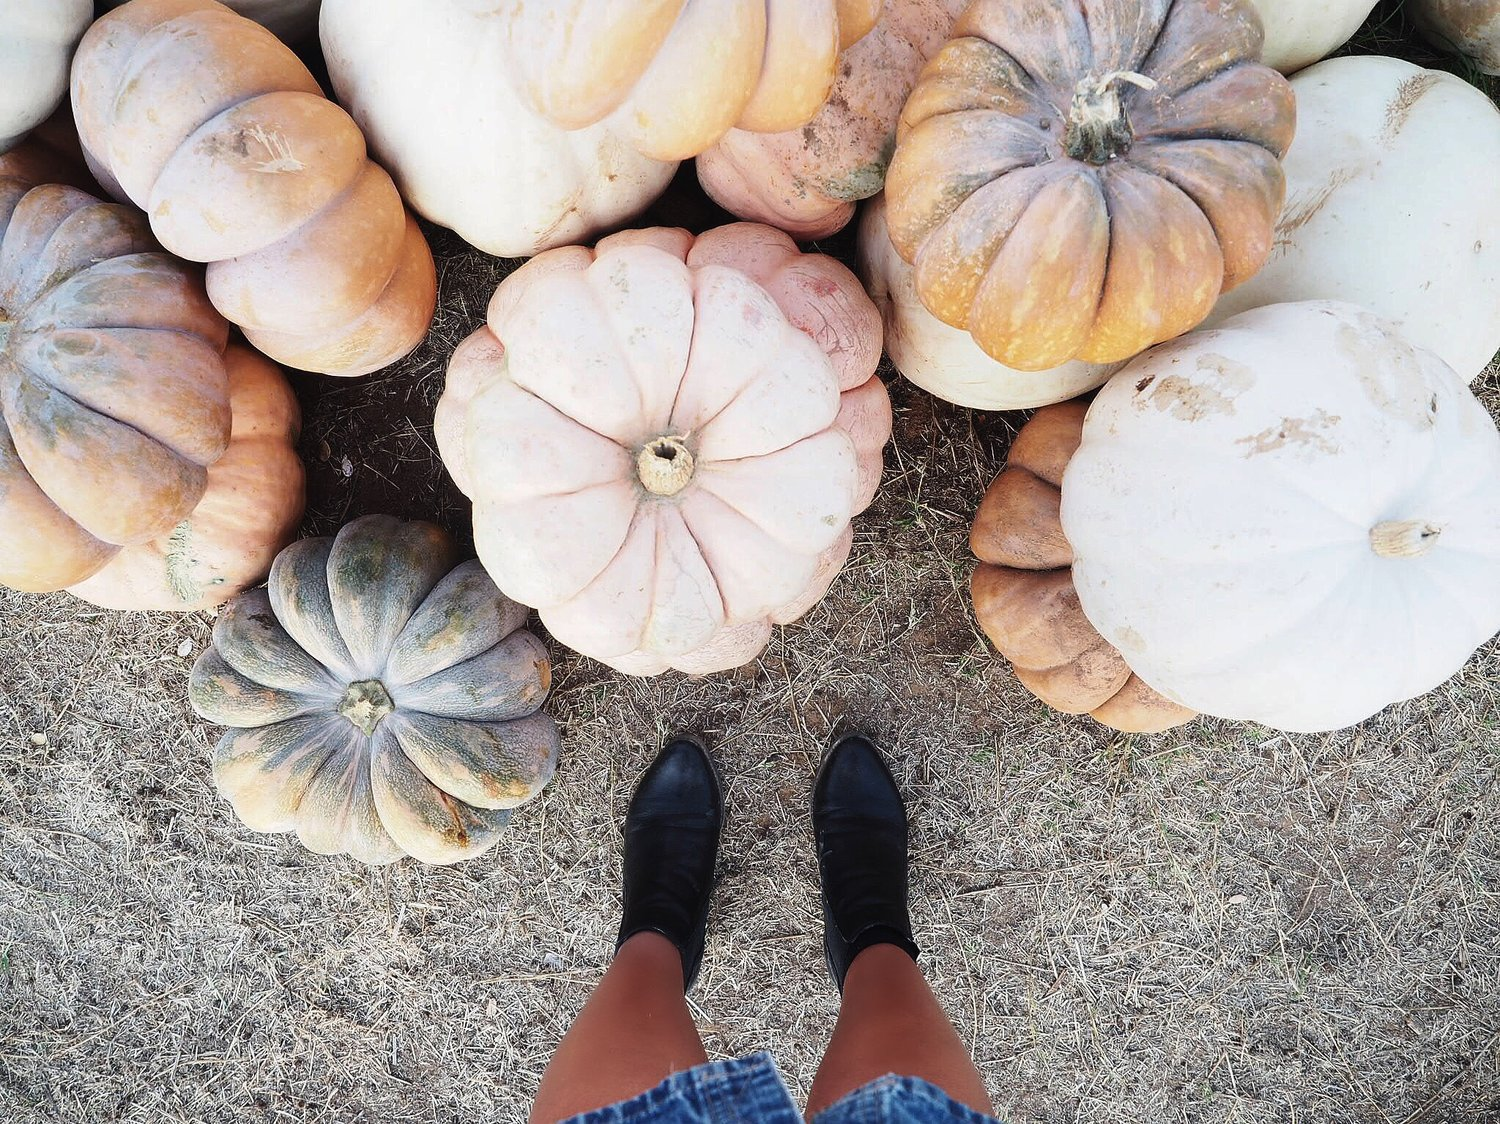 PHOTO DIARY:HALL'S PUMPKIN FARM -